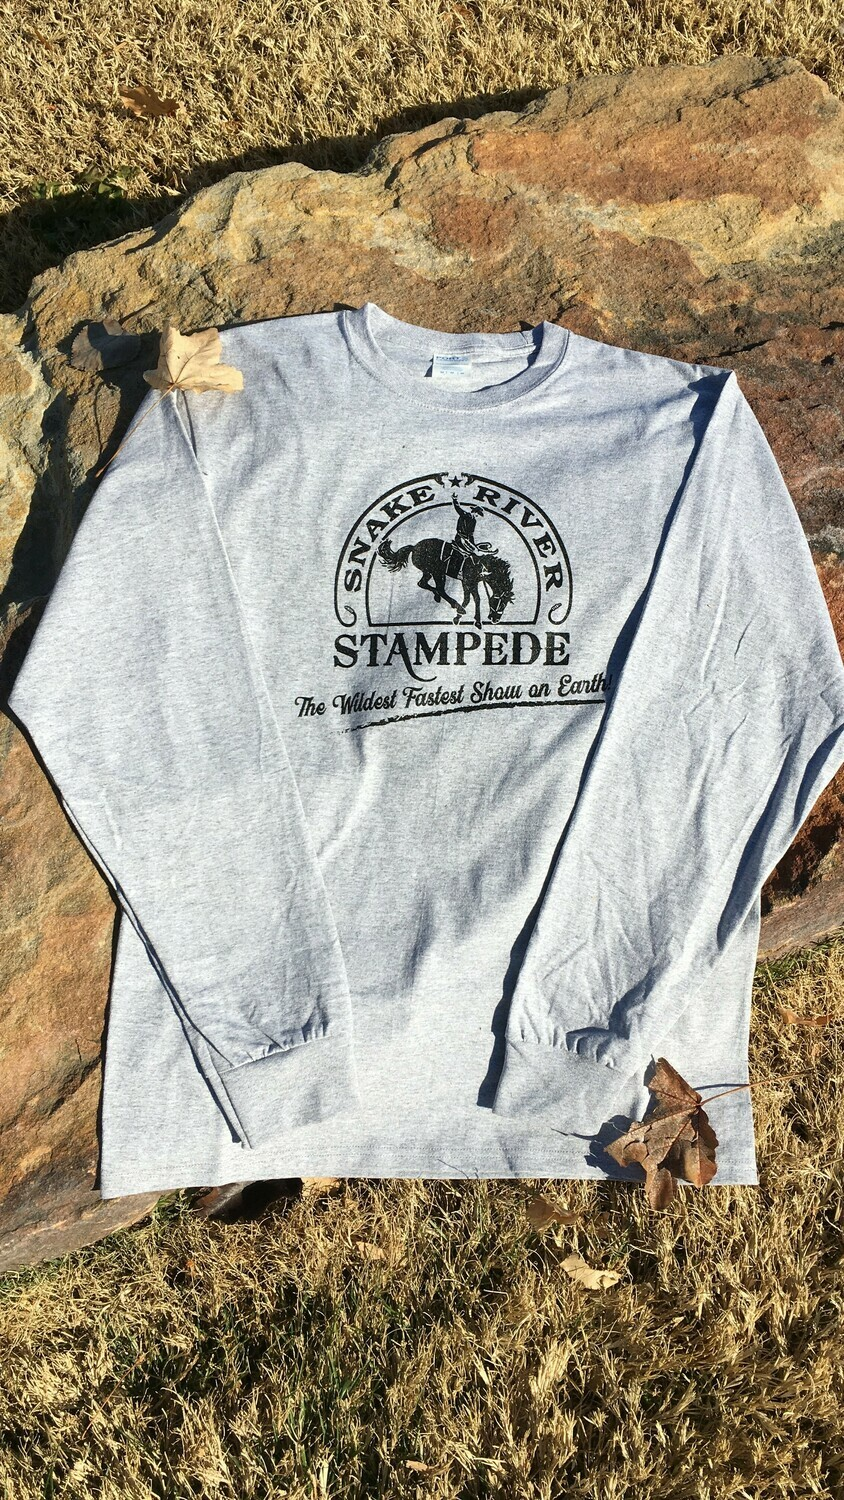 Men's Long Sleeve T-shirt with traditional Snake River Stampede logo